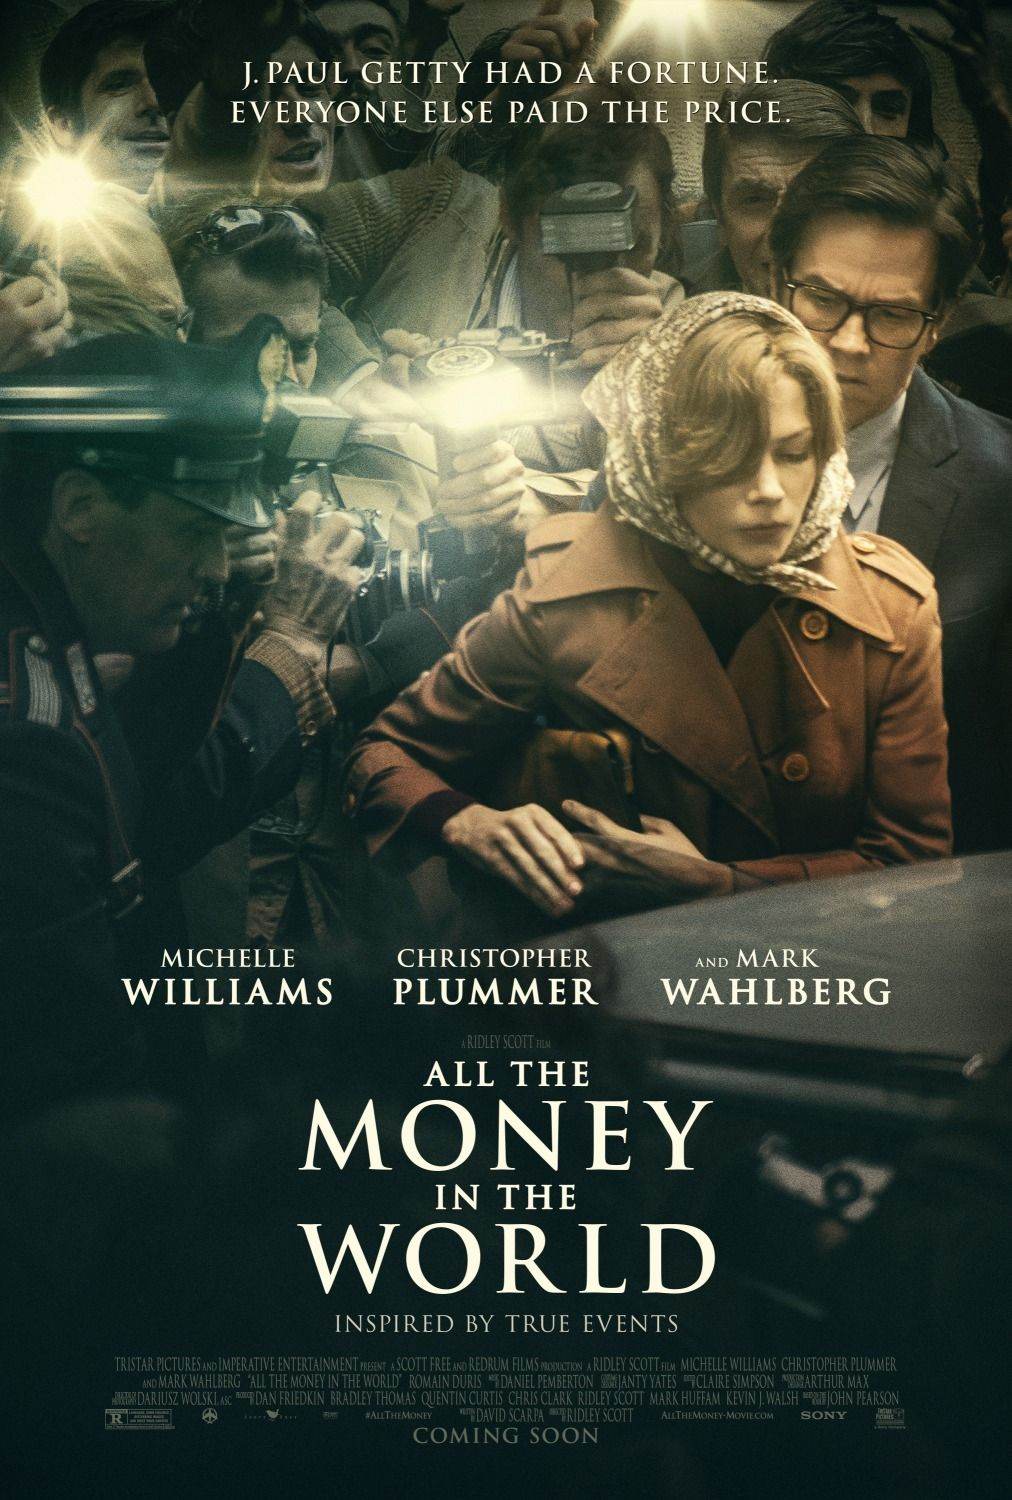 All The Money In World Movie Poster 1 Posters 2018 Indihome Sky Top Up 3 Gb